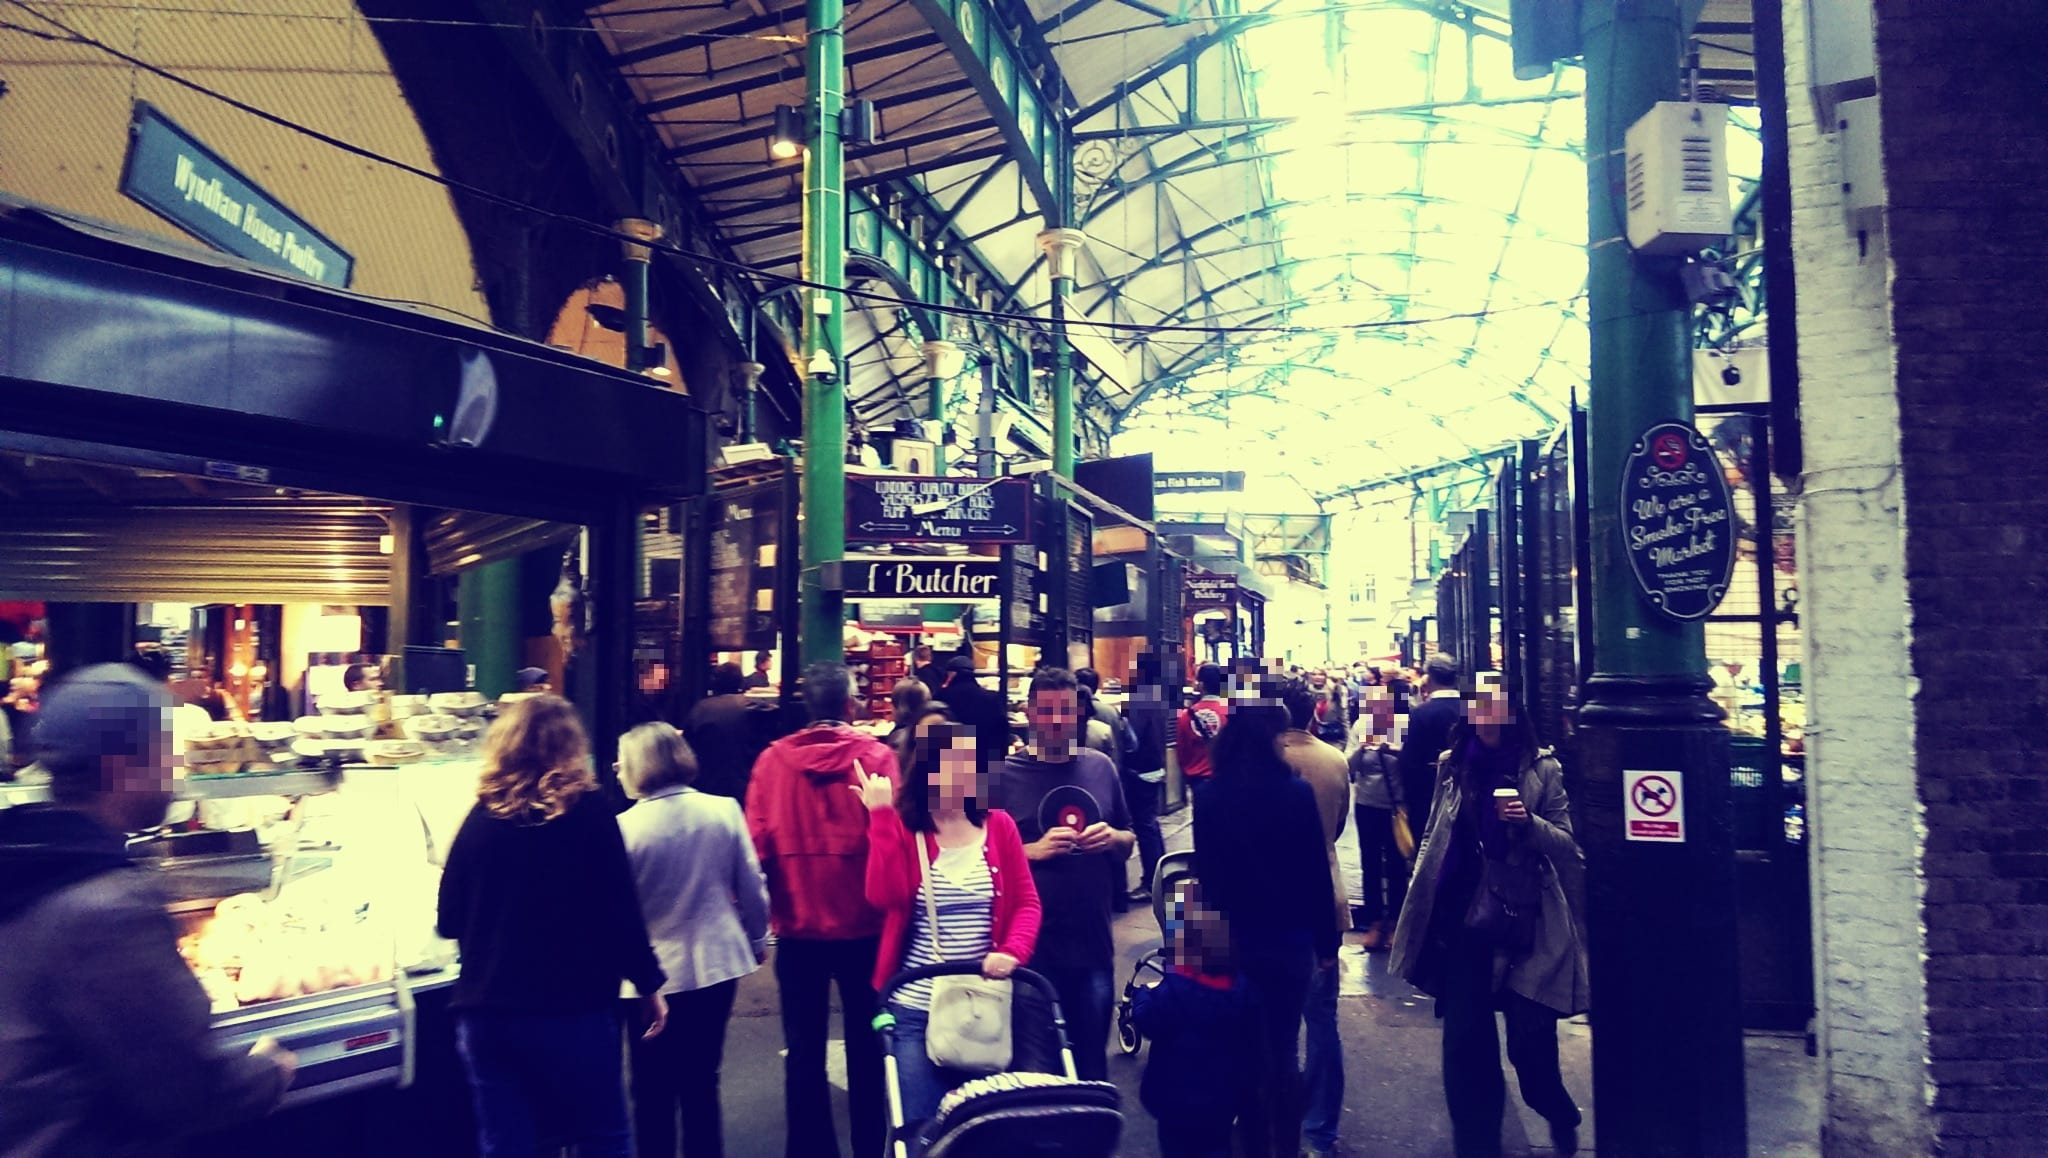 Borough Market Foodhall